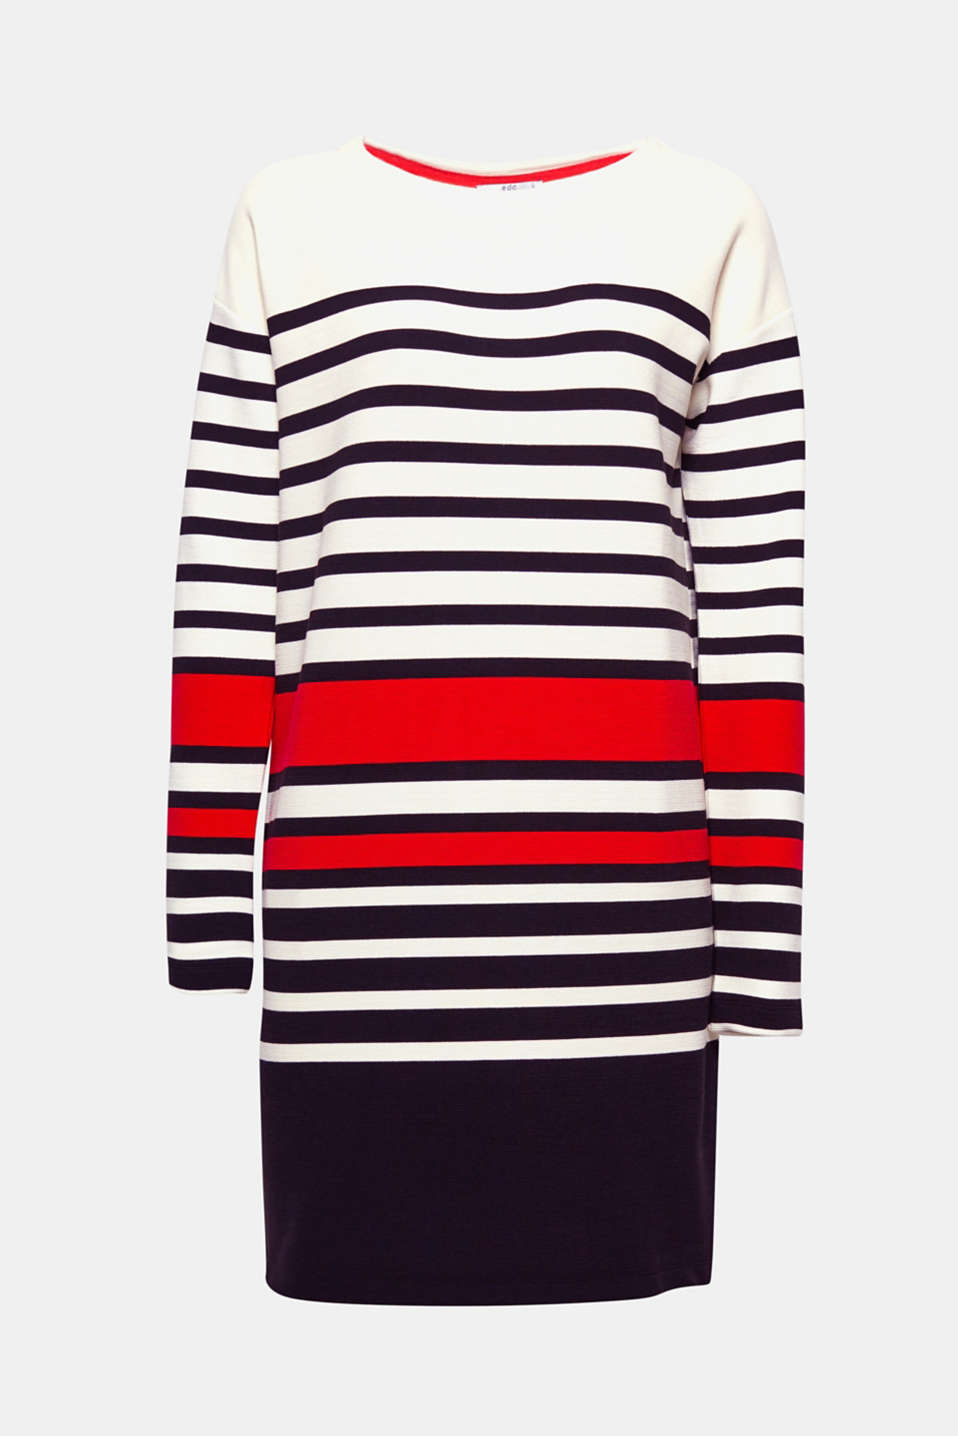 This graphically striped and finely ribbed sweatshirt dress in a trendy, oversized cut is cool and fresh.